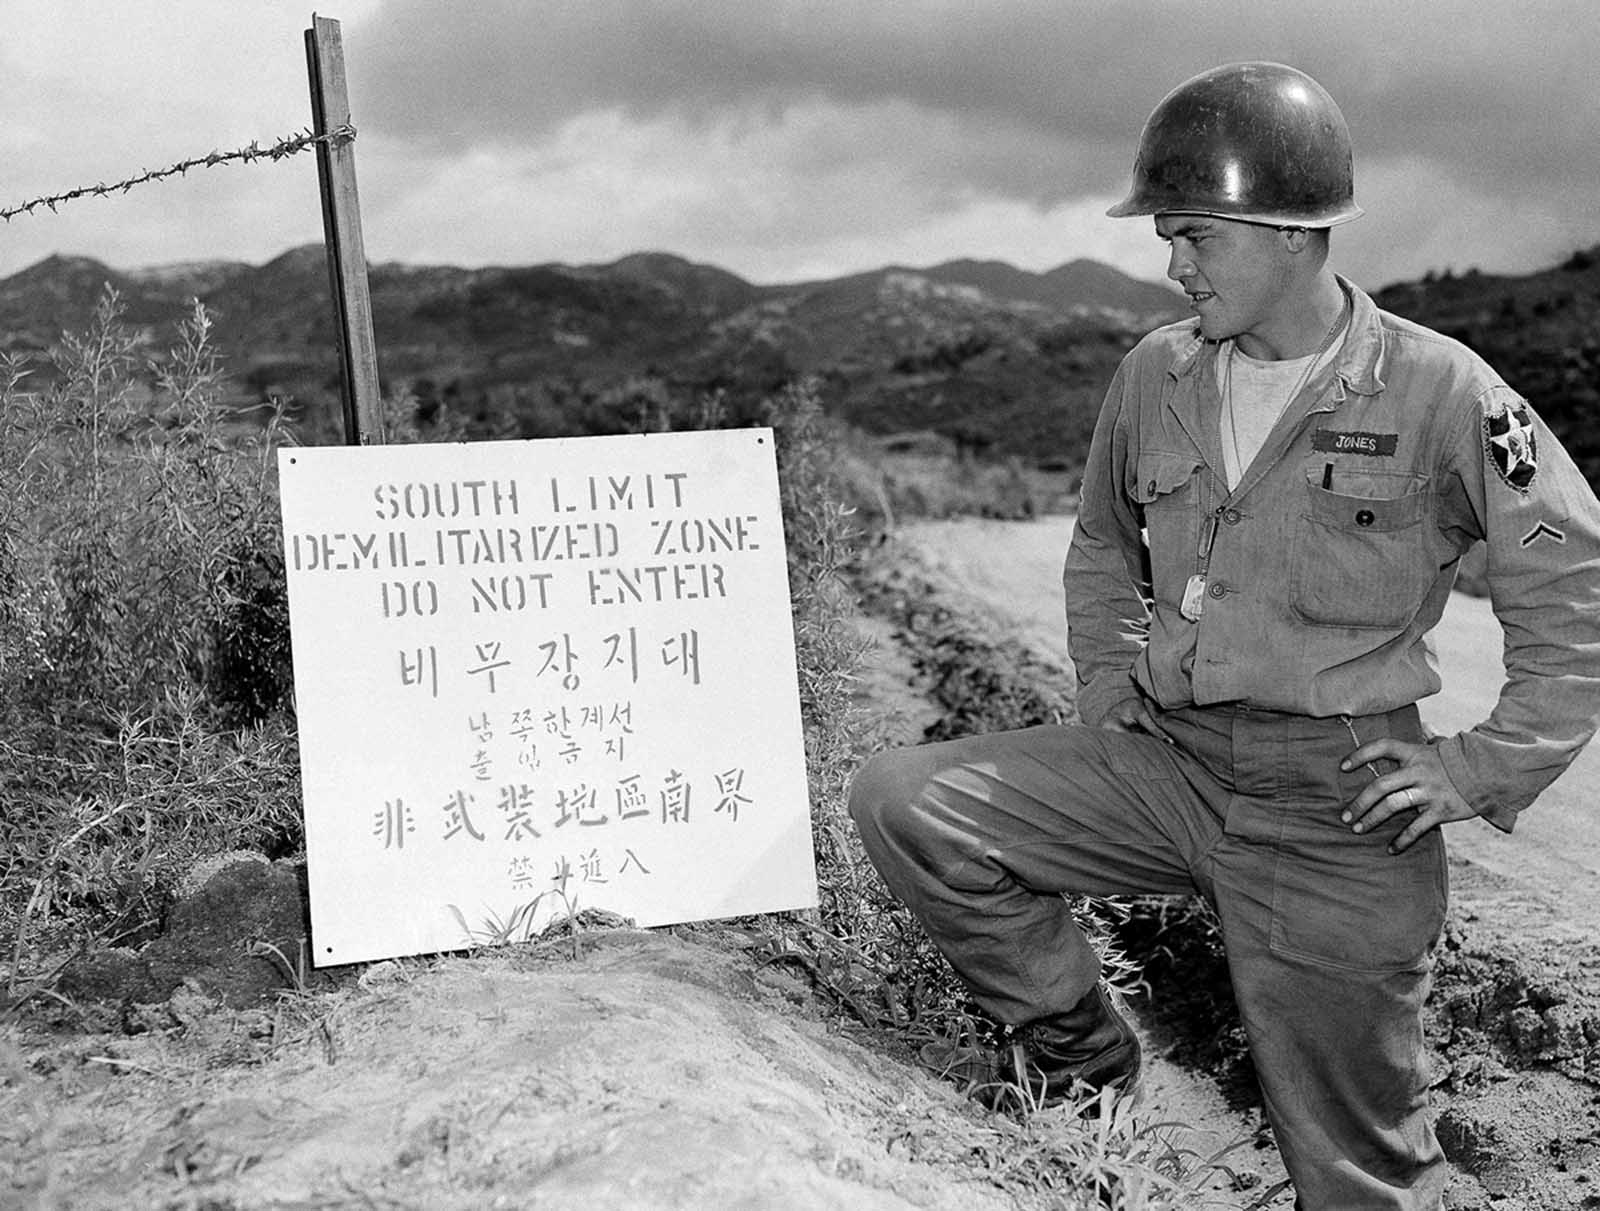 PFC Donald Jones of Topeka, Kansas, pauses to read a sign just posted on the south limit of the demilitarized zone in Korea on July 30, 1953.